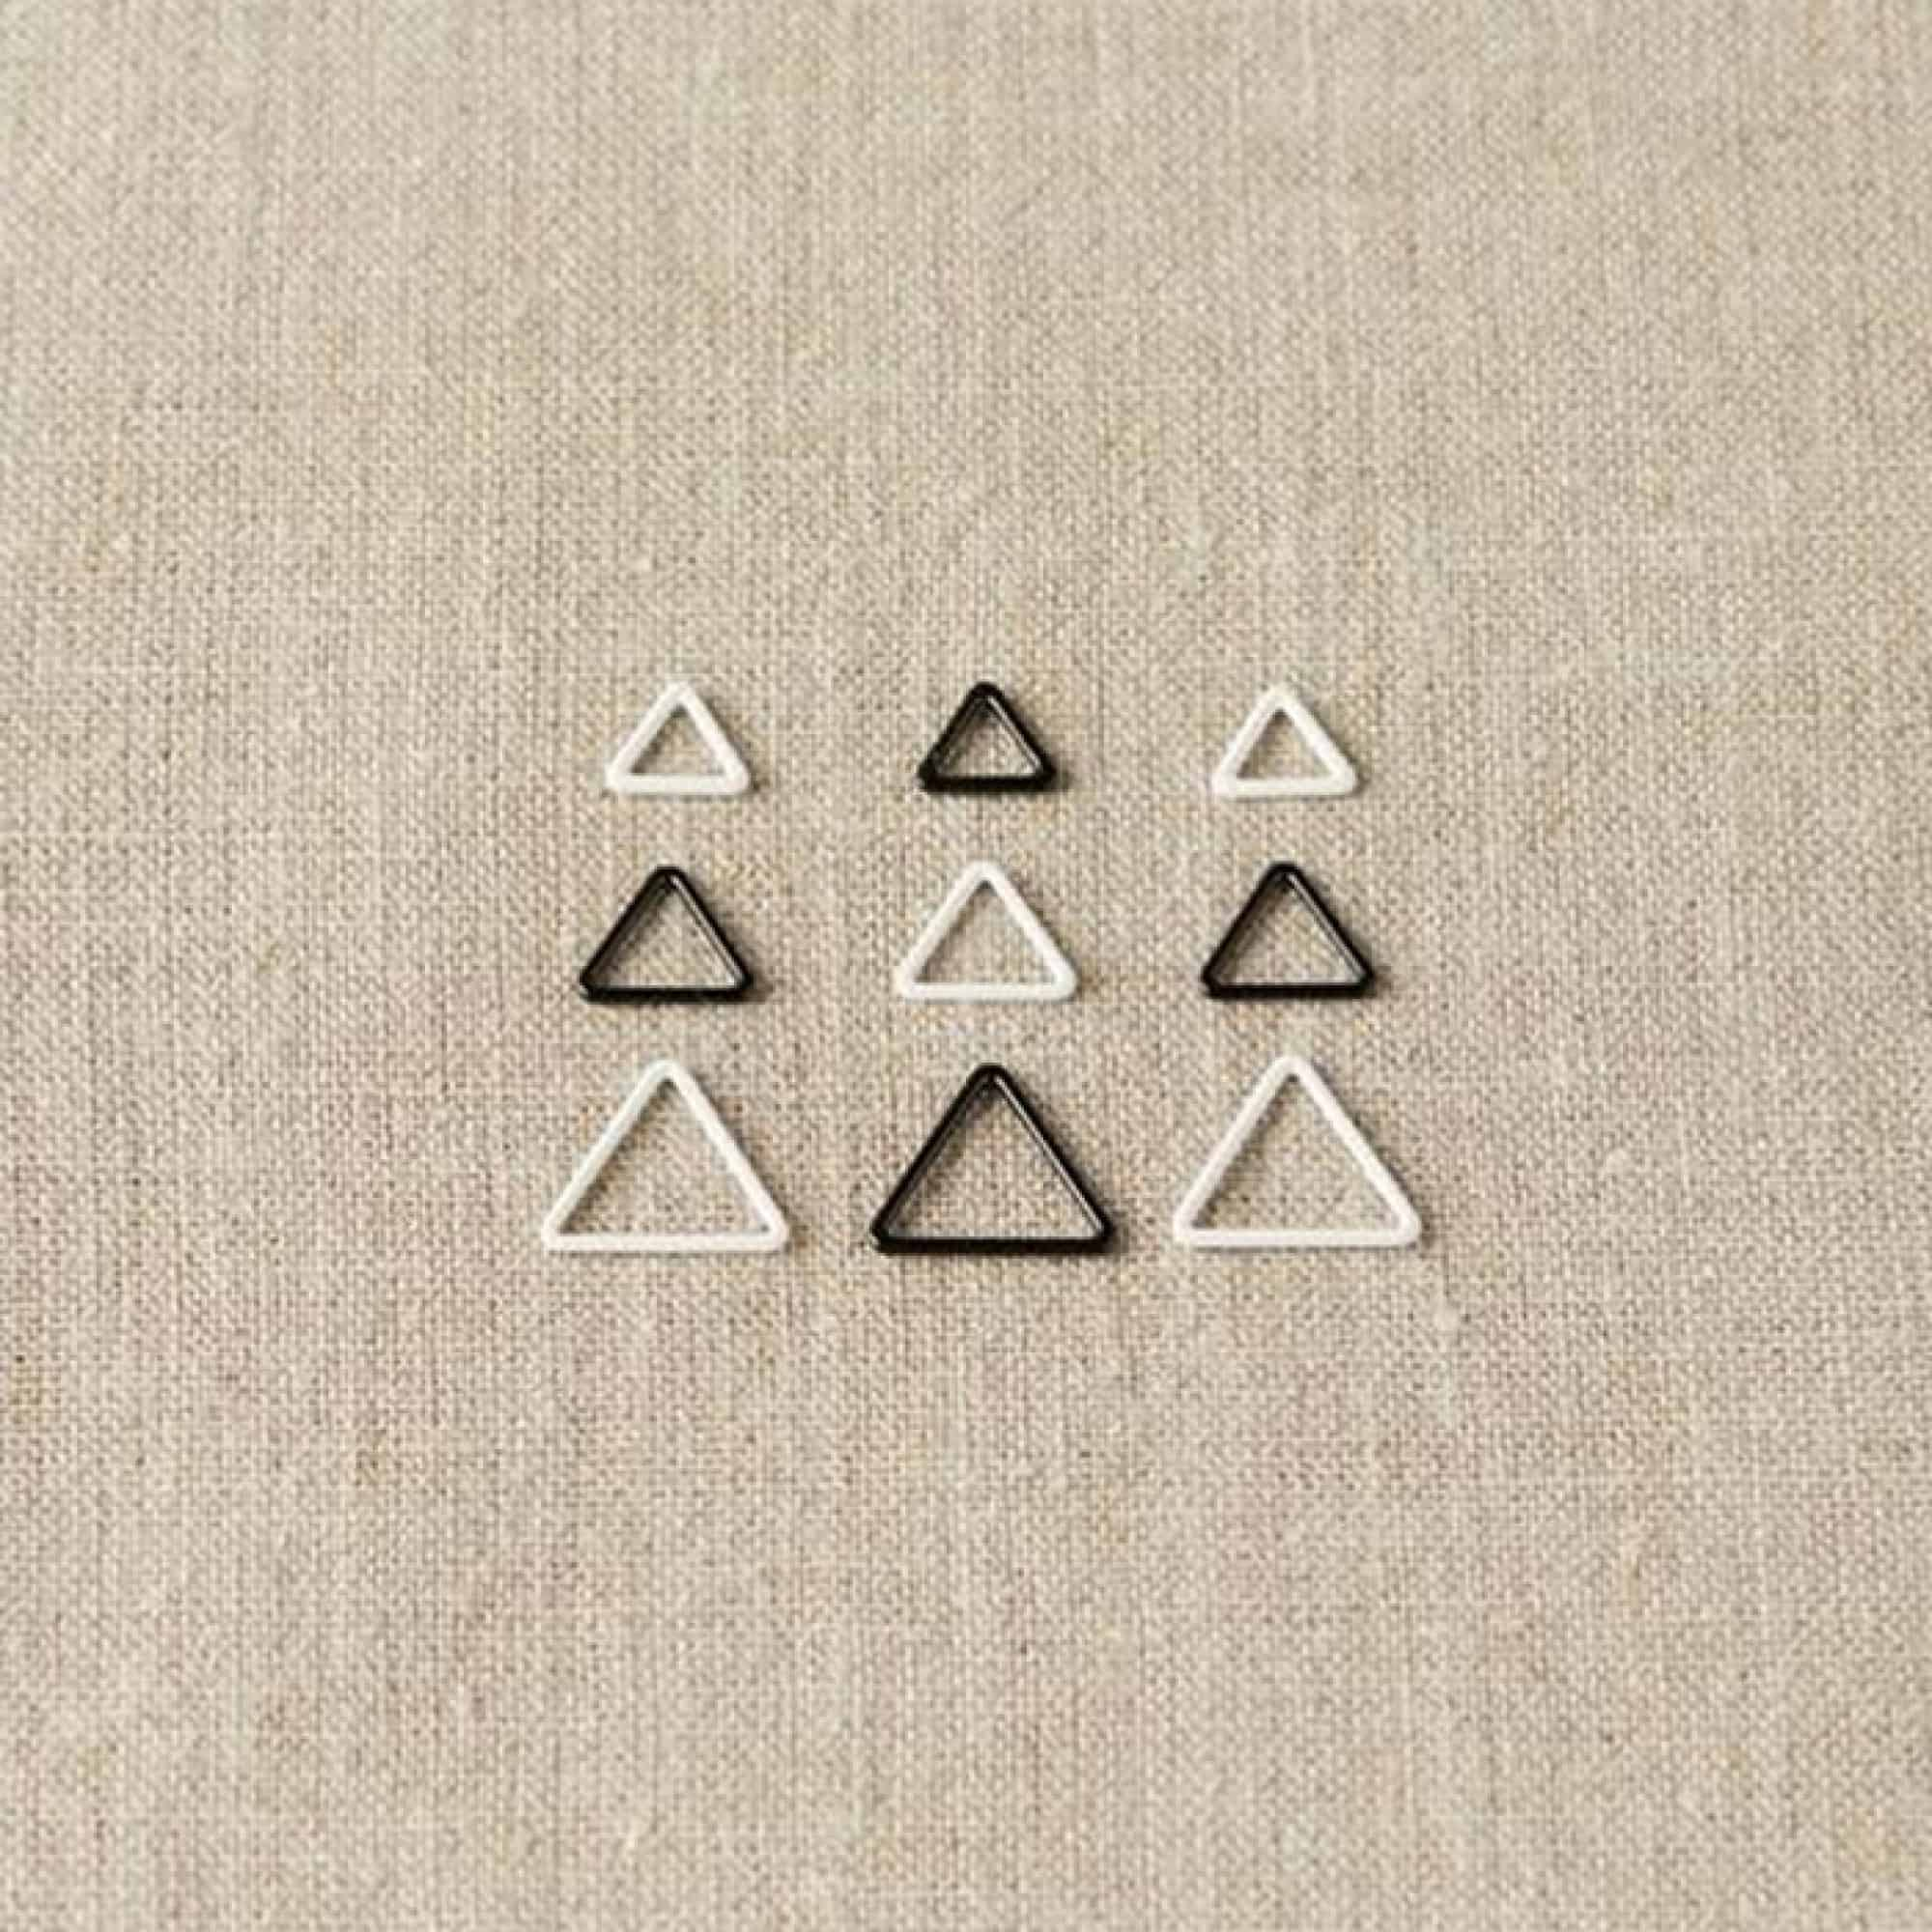 cocoknits-triangle-stitch-markers-laid-o